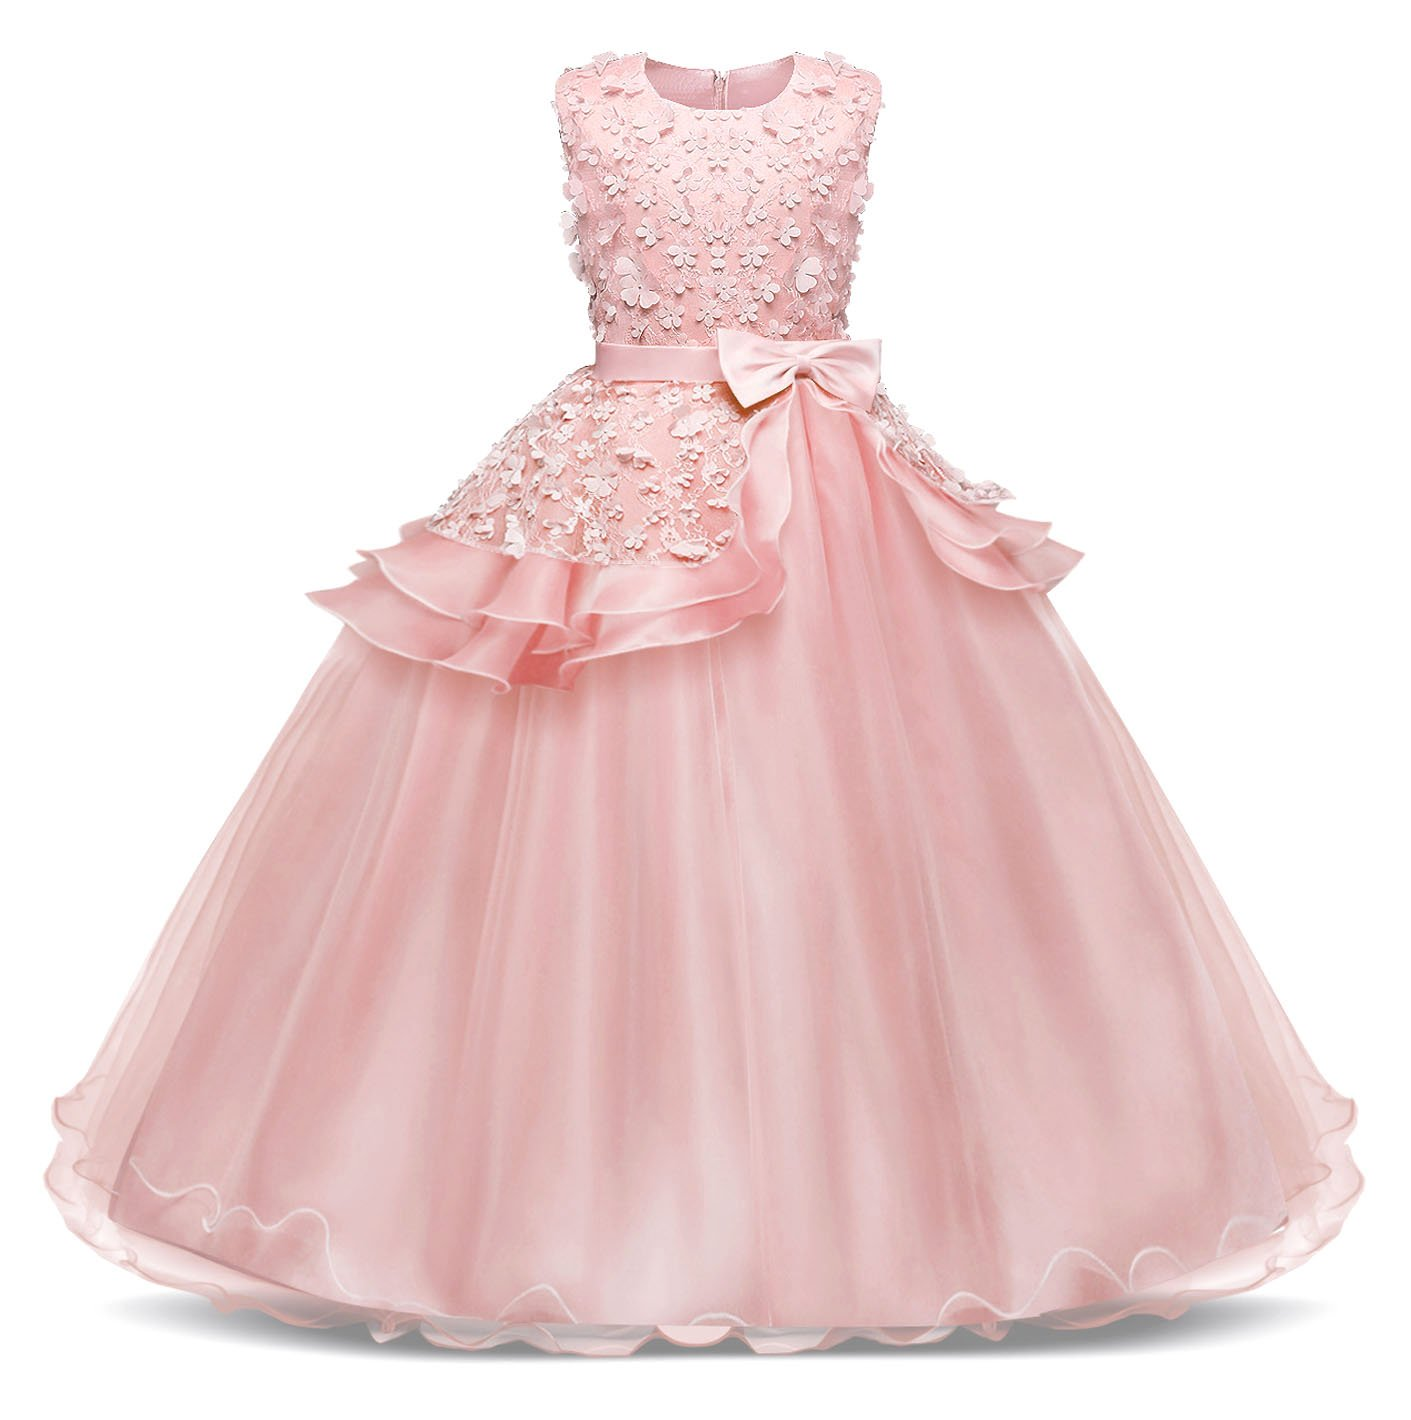 AmzBarley Wedding Pageant Girls Dress Party Special Occasion Long Tulle Bow G030-CA